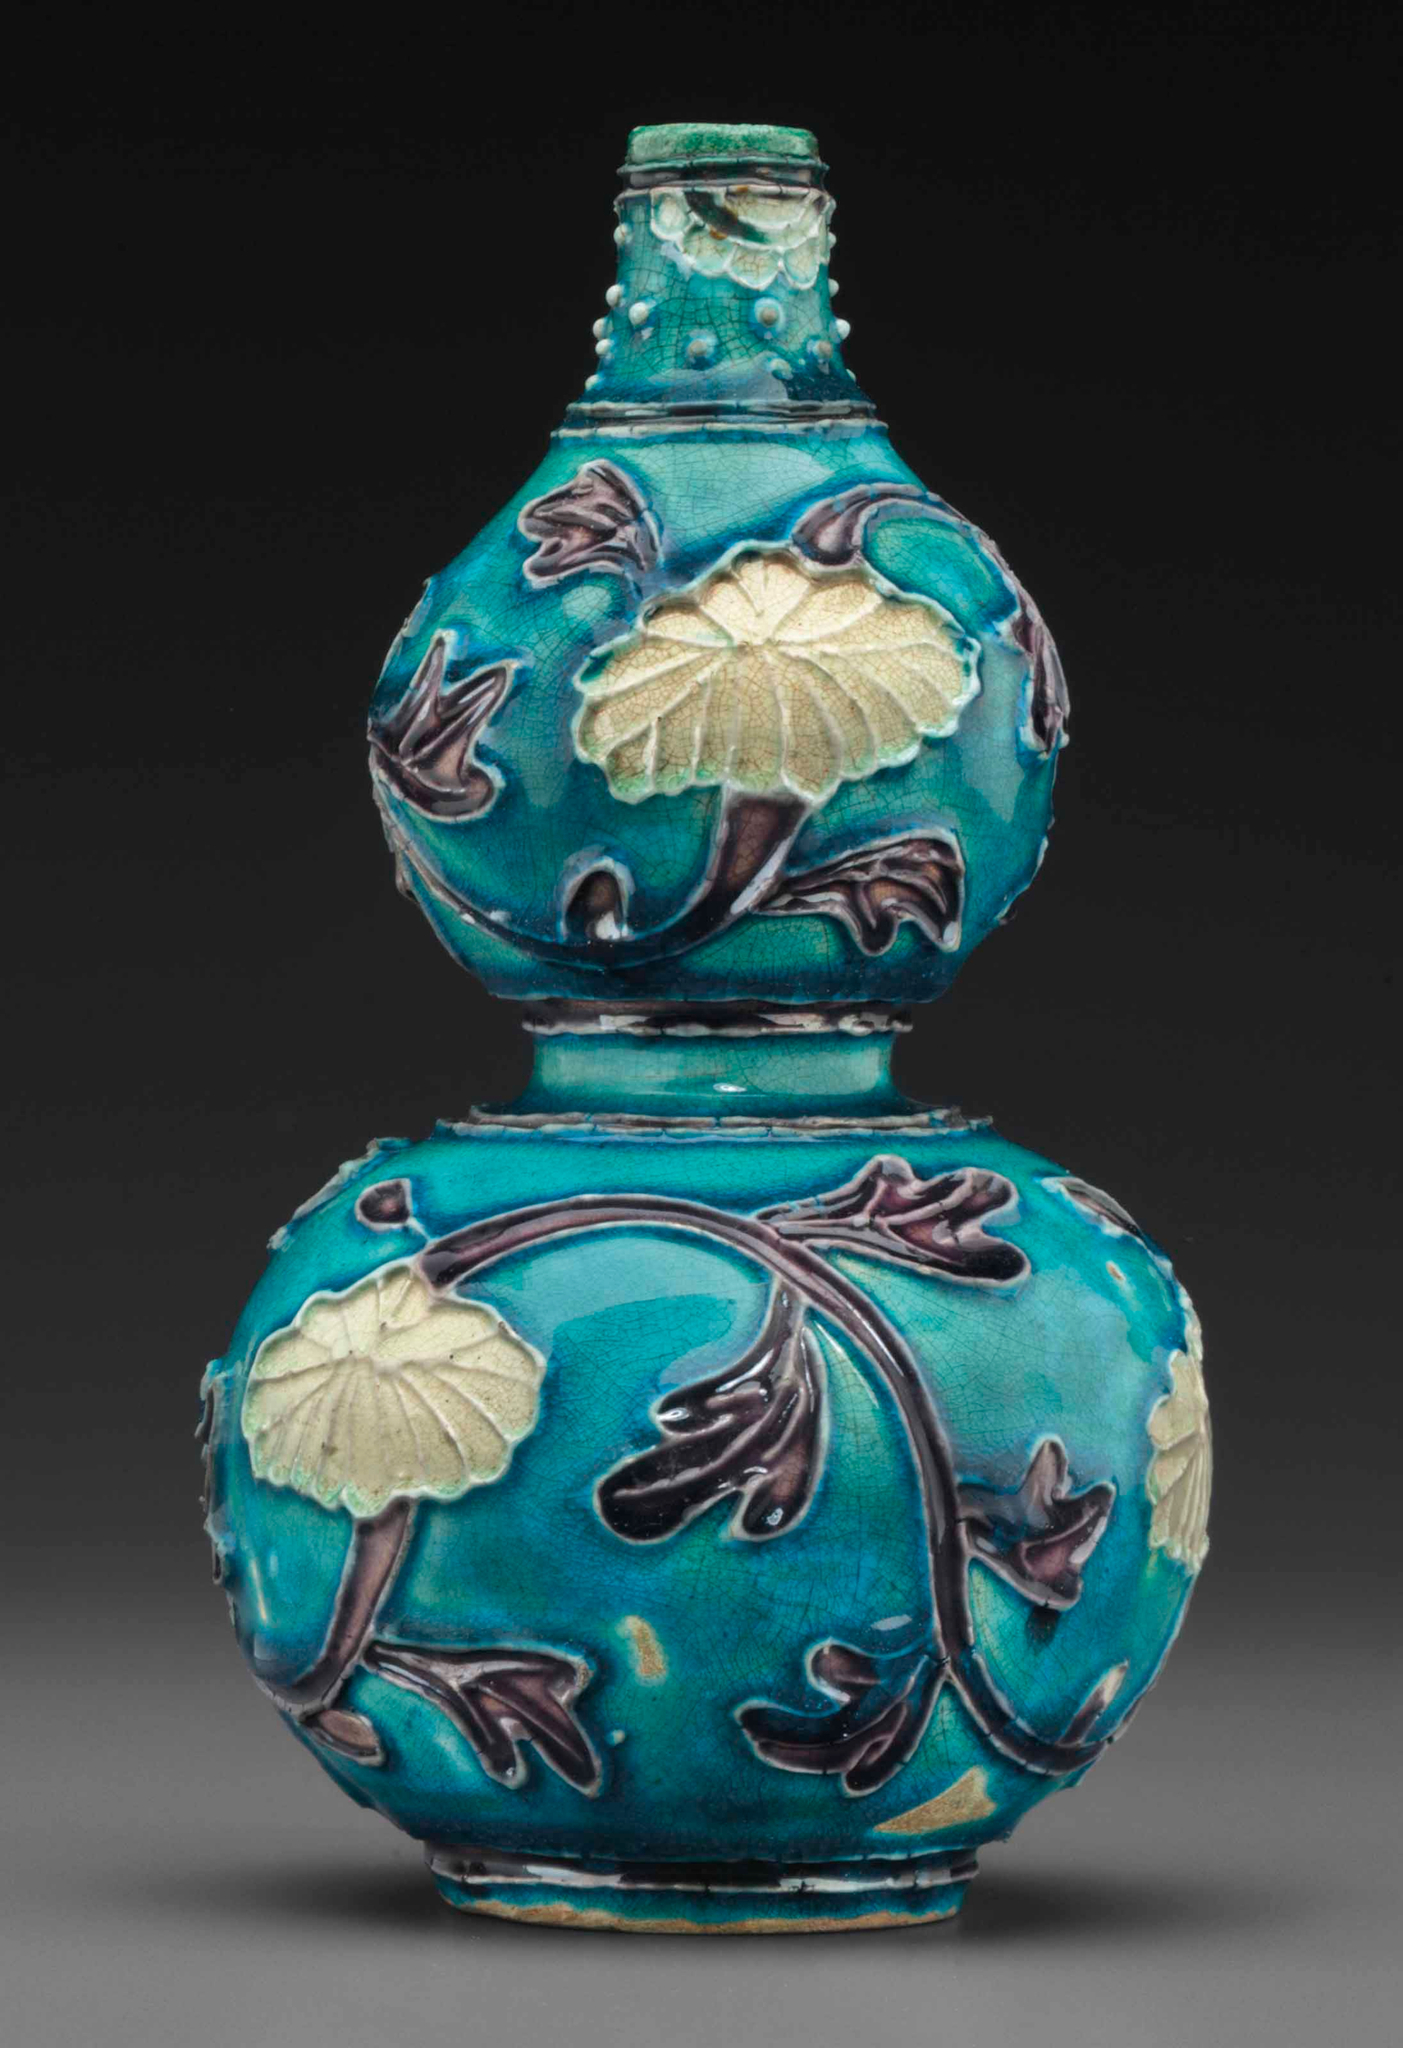 A small fahua double-gourd vase, Ming dynasty, 17th century